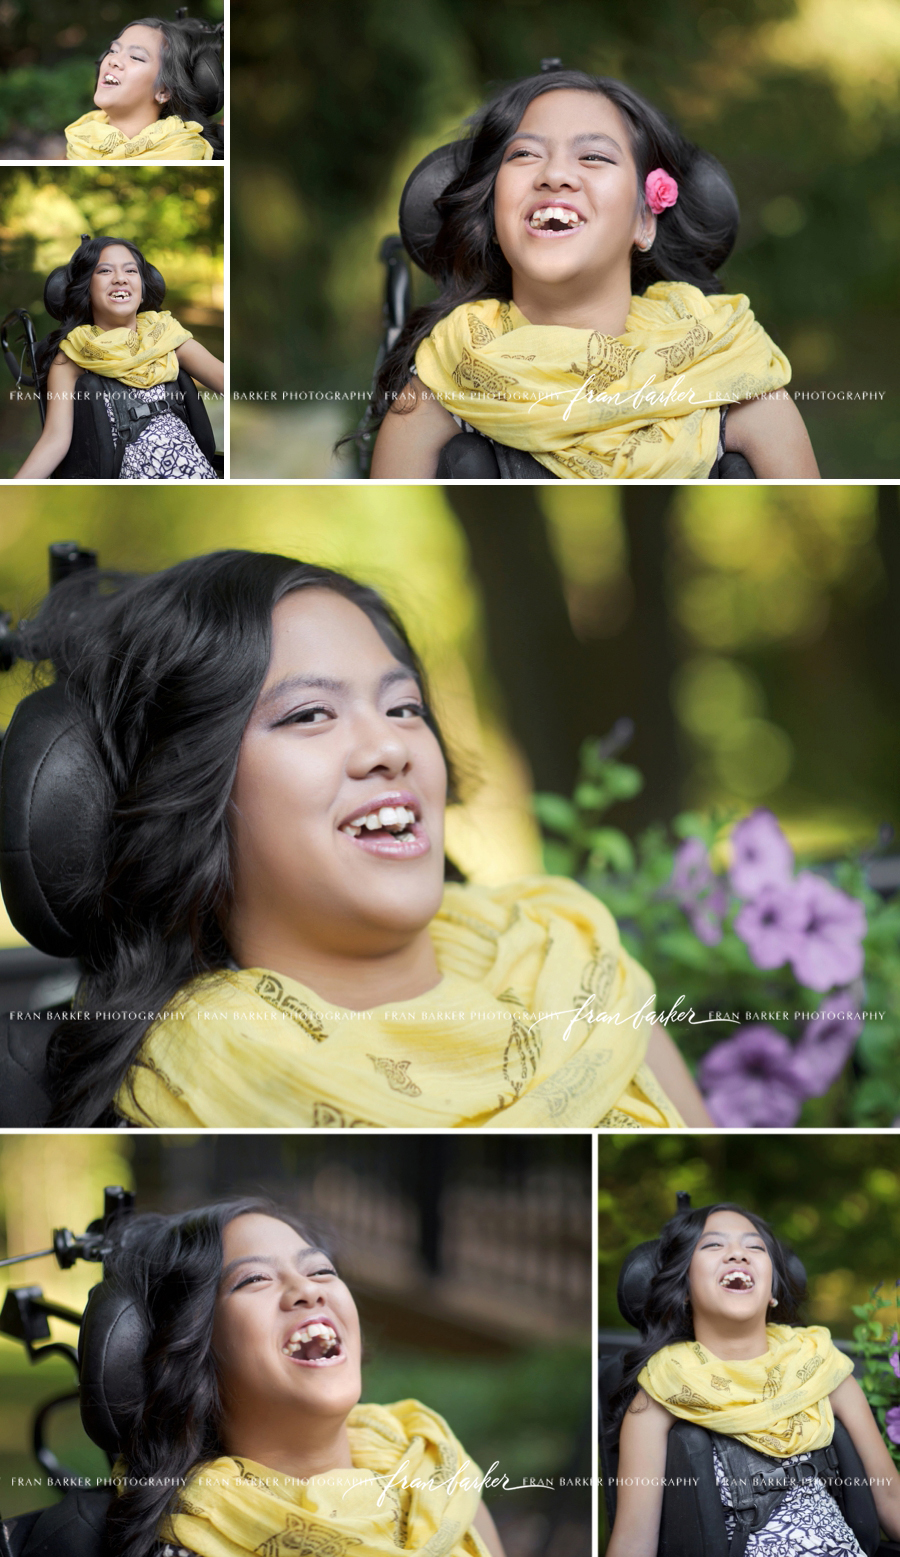 embracing smiles, portraits with smiling eyes, portraits in a wheelchair, wheelchair posing, new albany ohio photographer